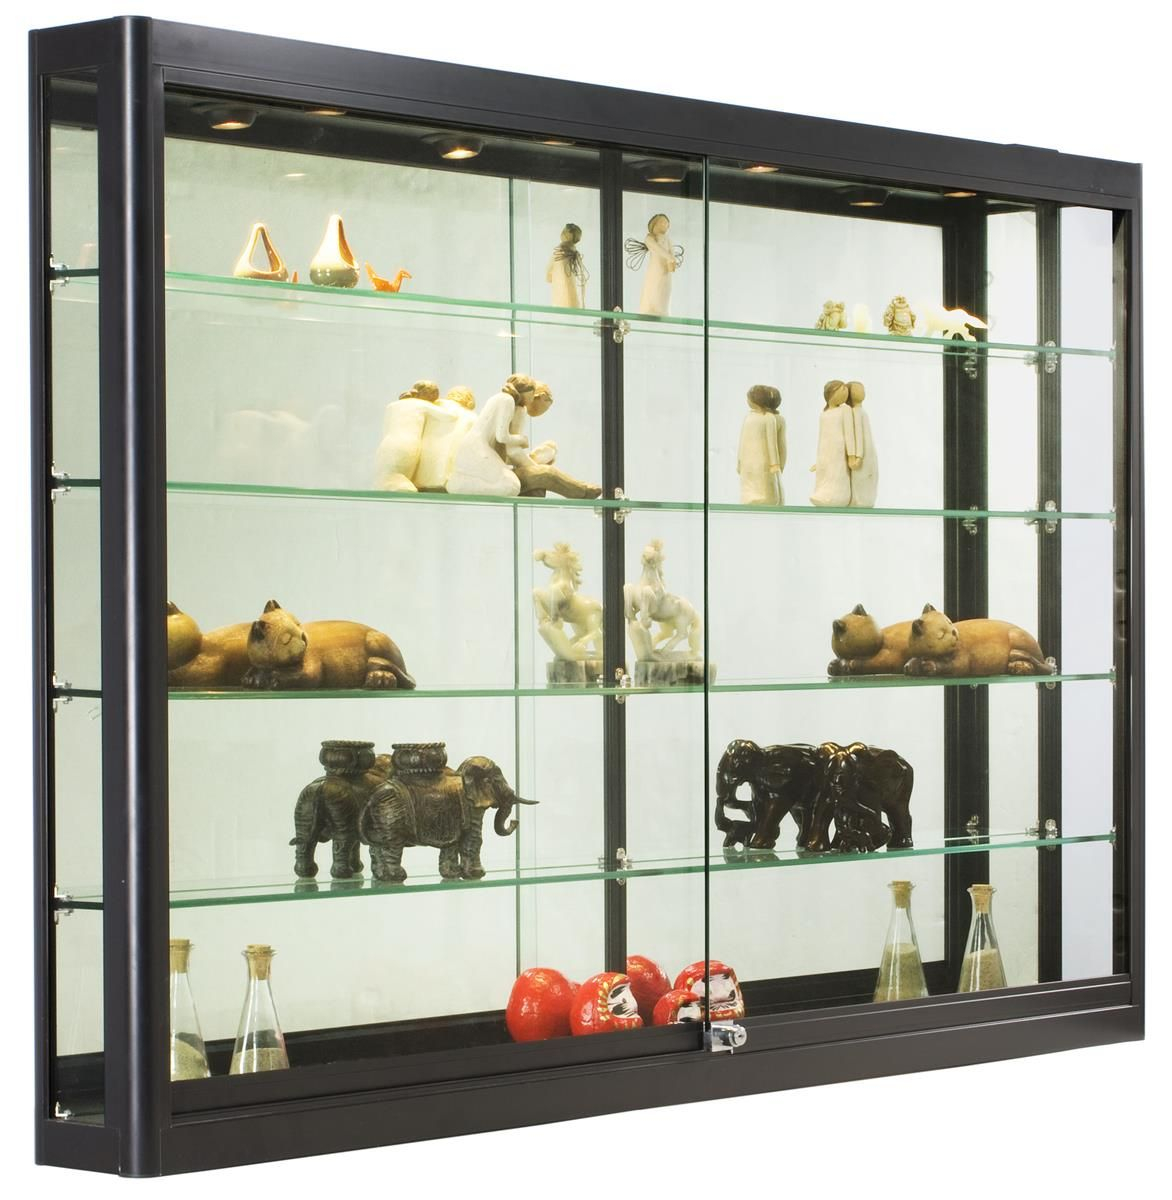 wall mounted display cabinets for collectibles u2022 display cabinet rh innovomediagroup com wall display cabinets for collectibles glass display cabinets for collectibles